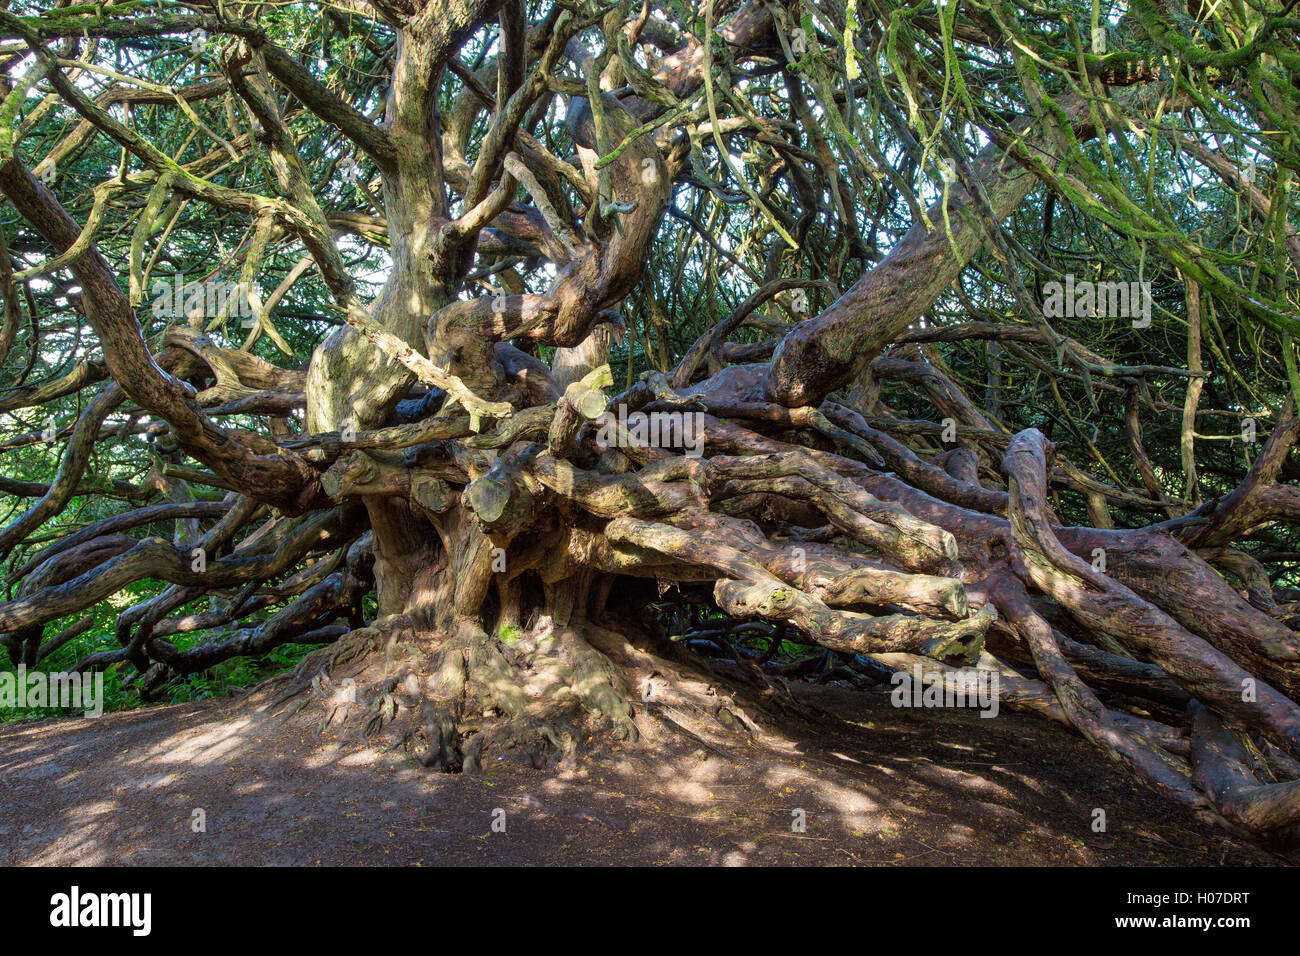 700 year old Yew tree on Crom Castle Estate property, County Fermanagh, Northern Ireland, UK - Stock Image